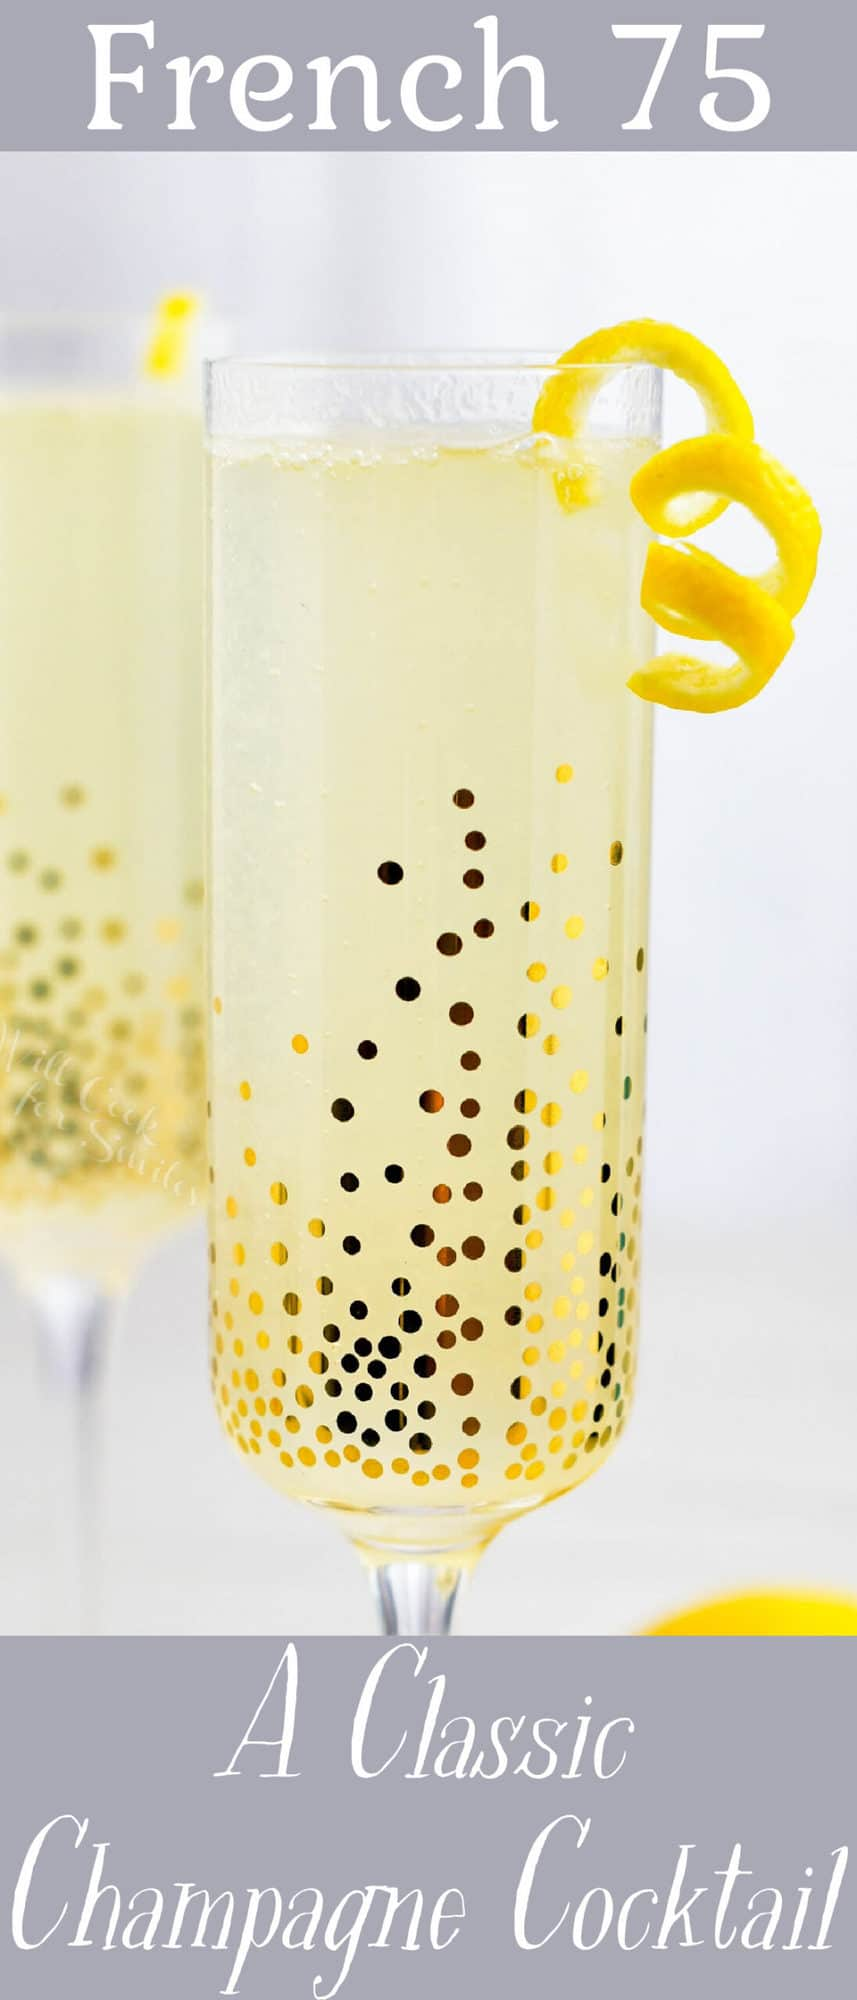 The title card for French 75 displays a glass filled with the cocktail.